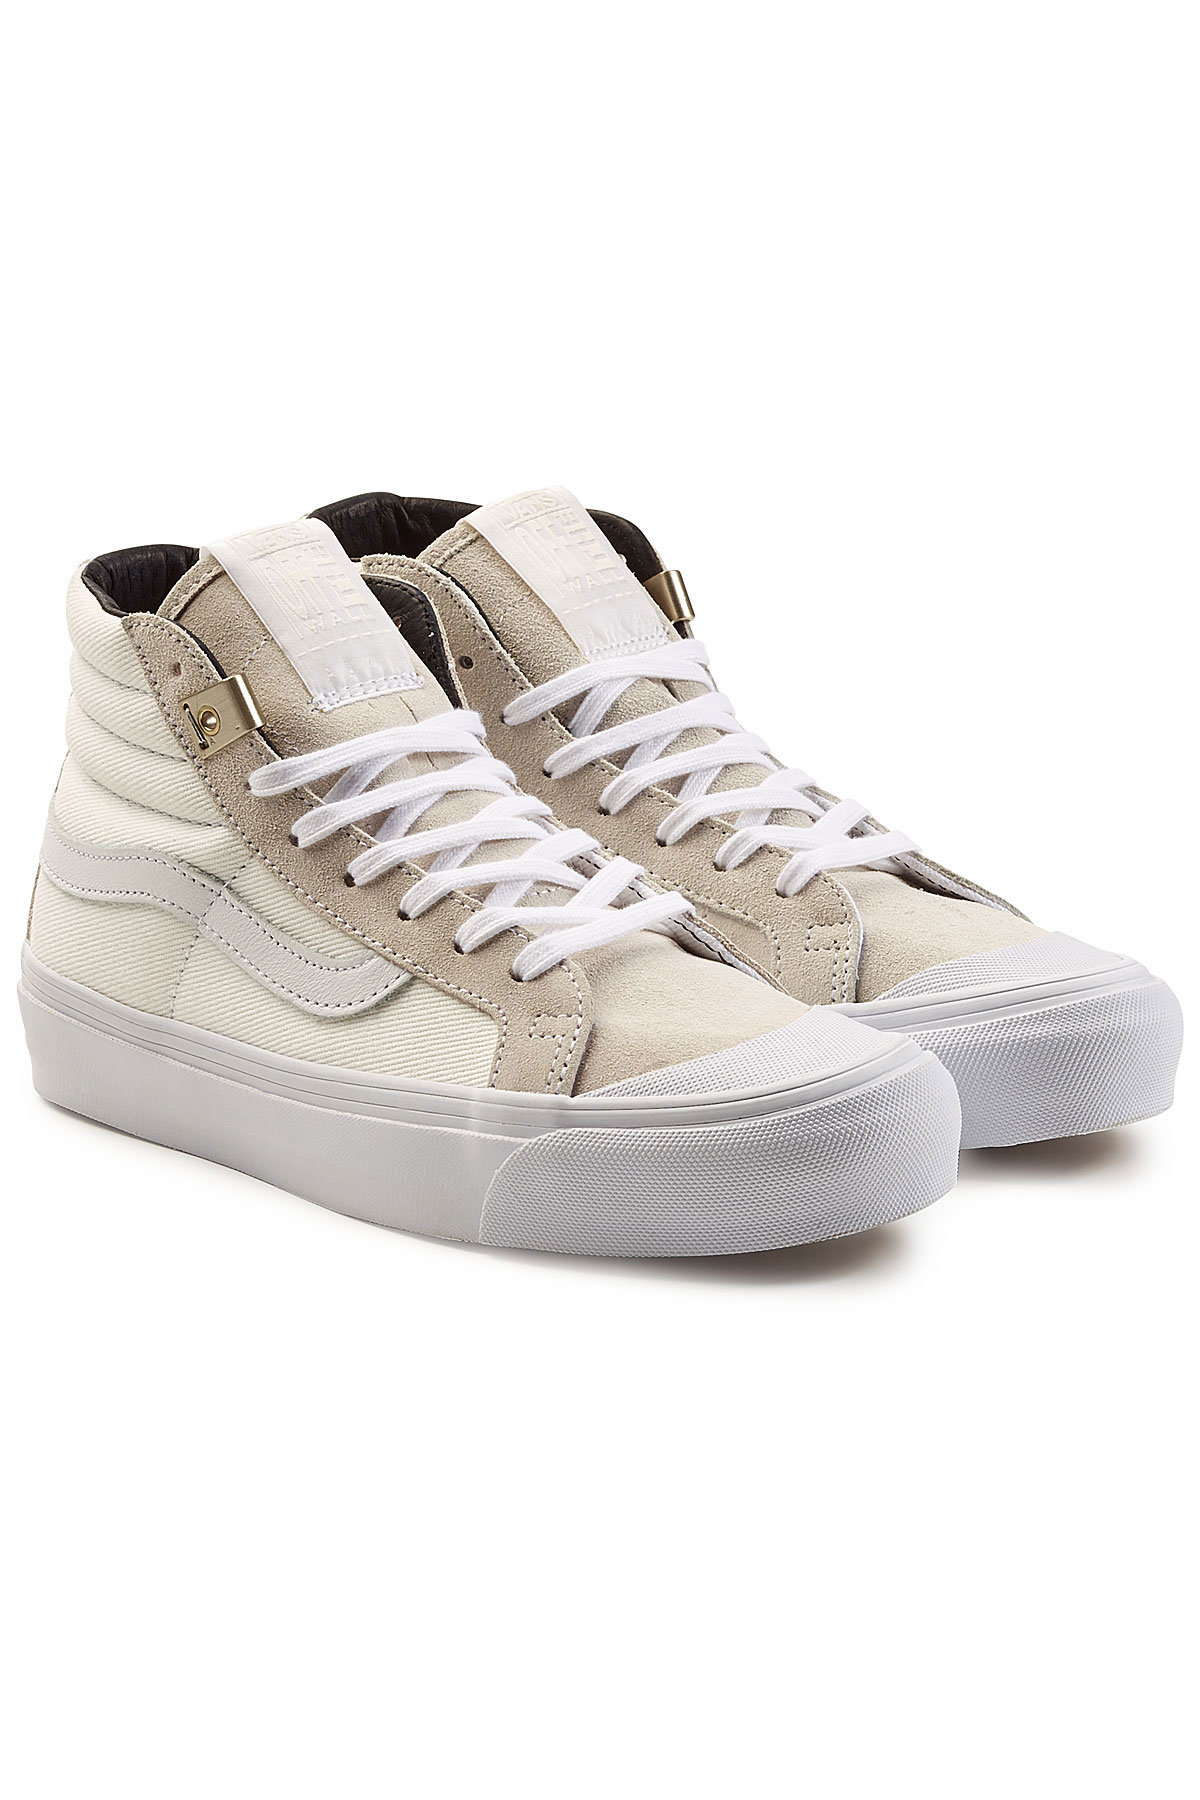 Vans OG 138 SK8 High Top Canvas Sneakers with Leather Gr. US 7.5 5ggbQM